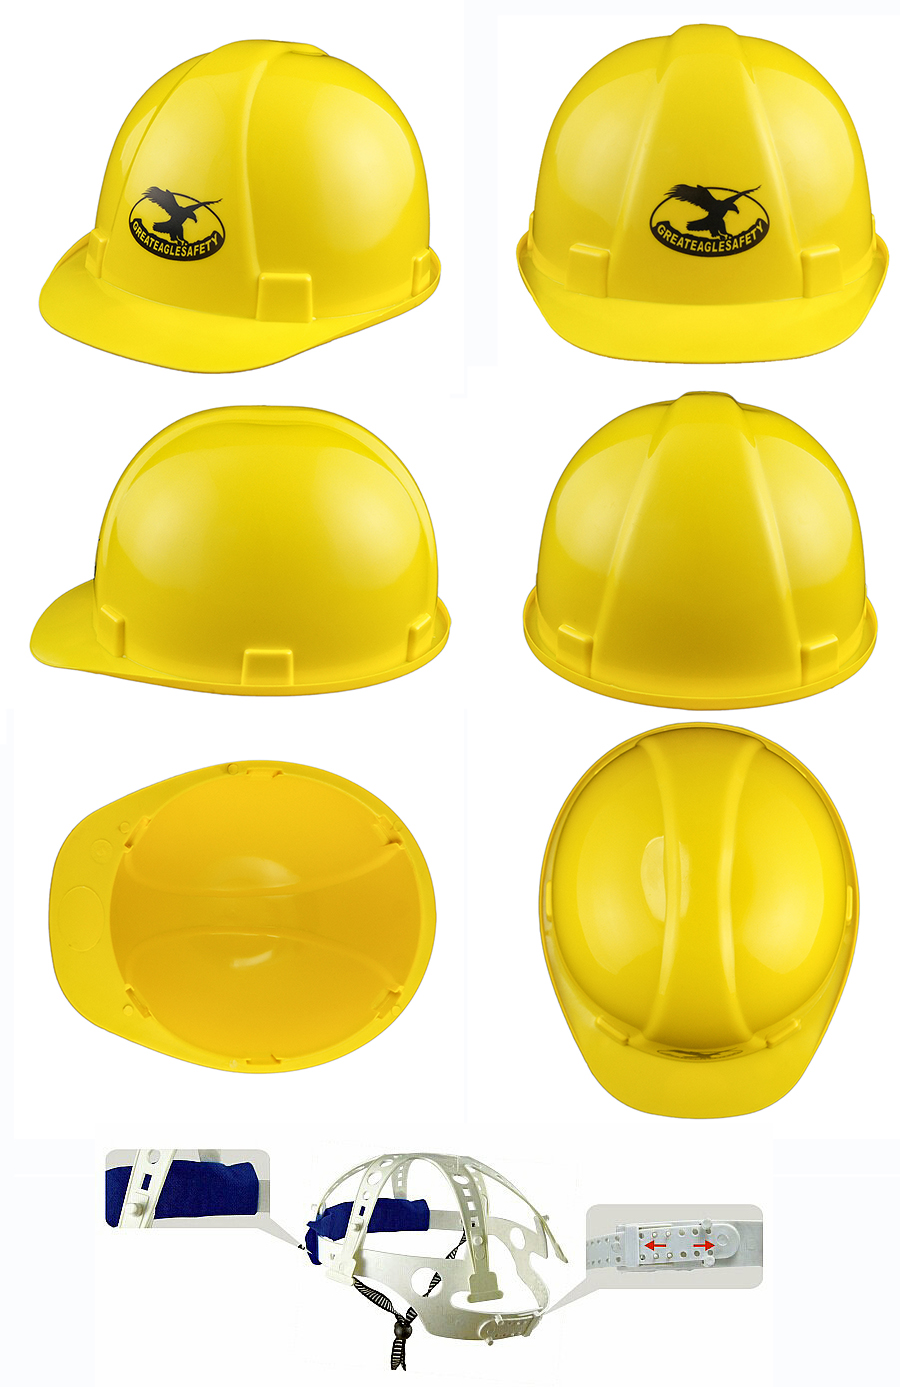 Economical Safety Helmet